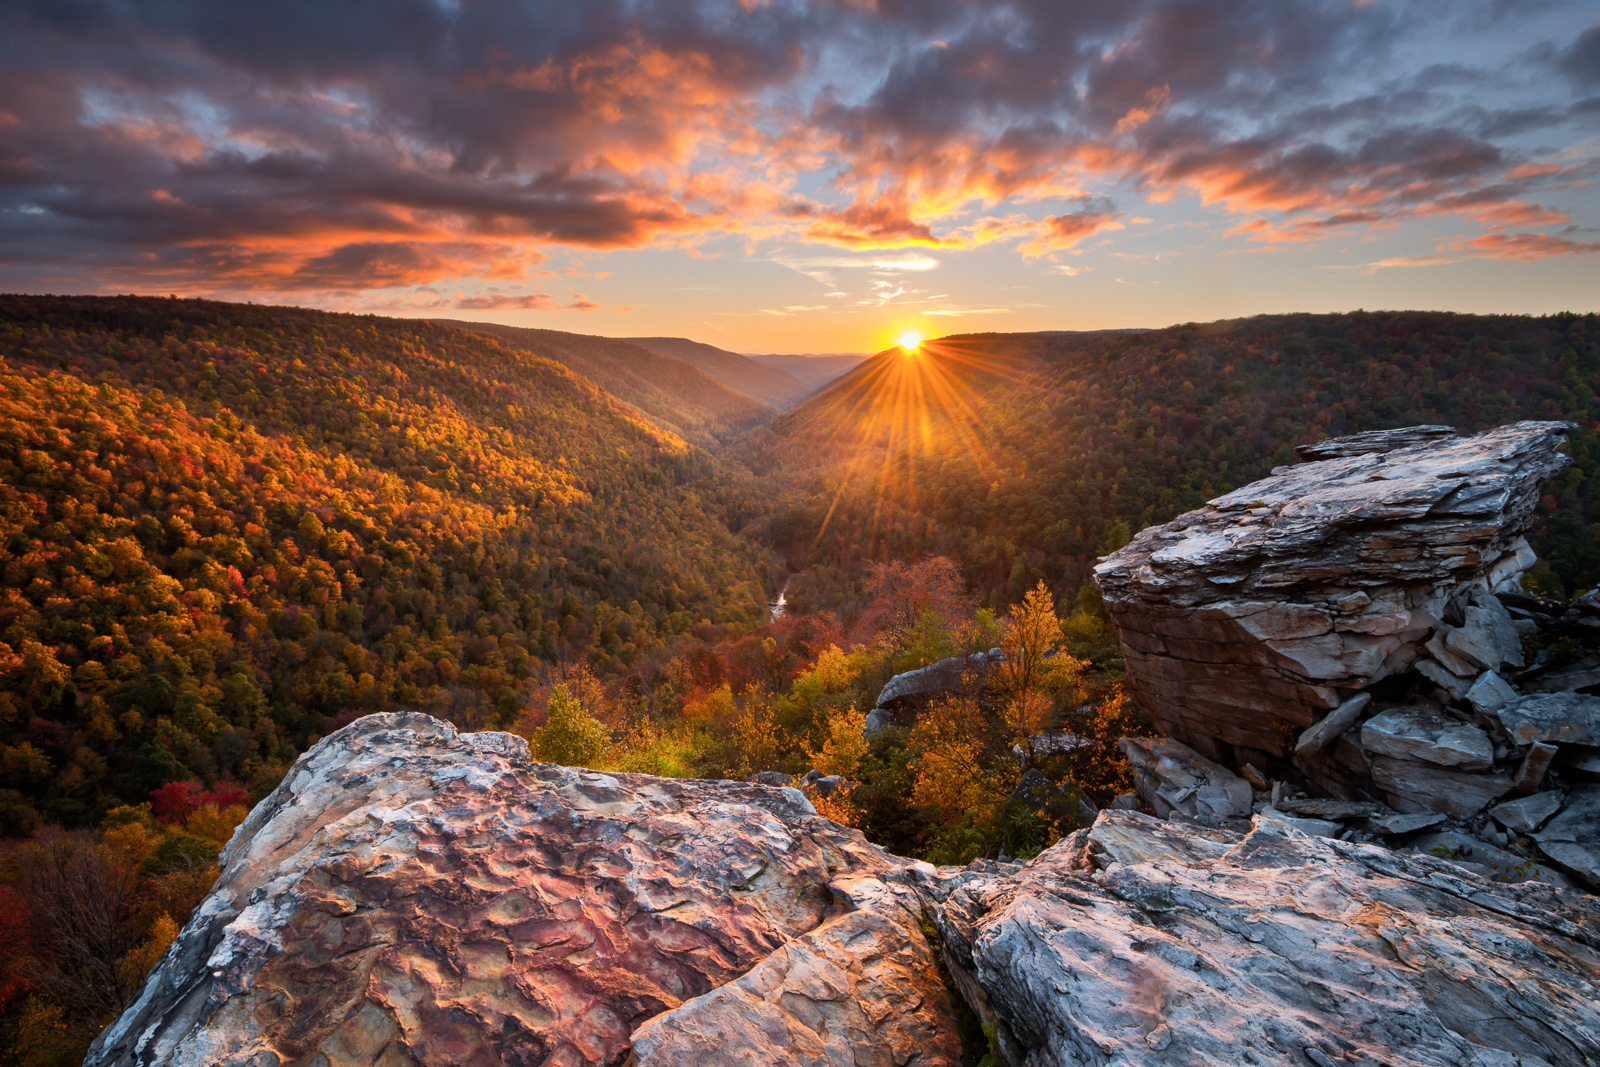 Sunset from Lindy Point, Blackwater Falls State Park, West Virginia